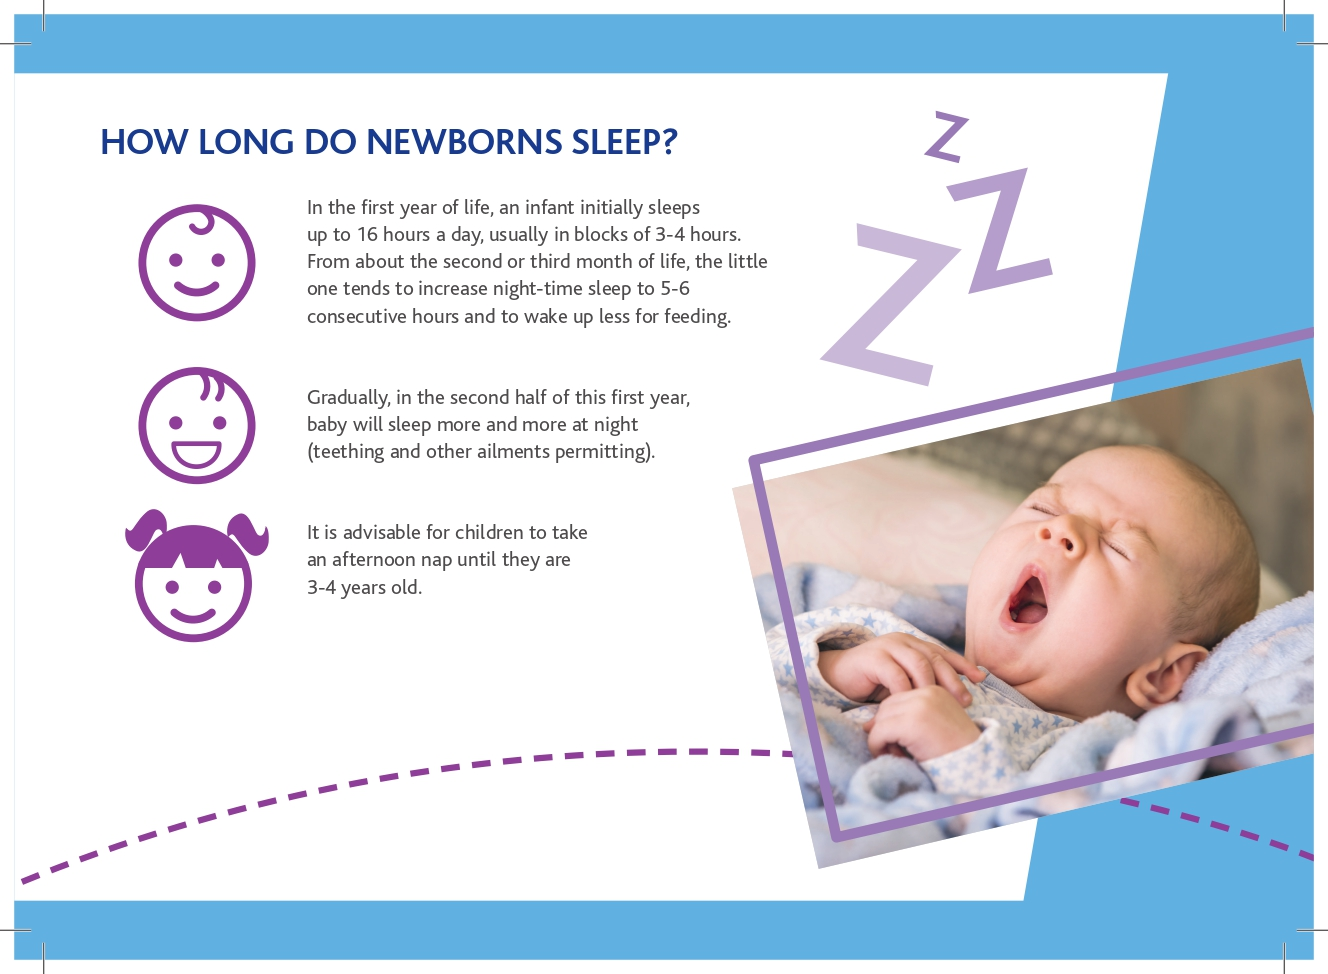 sleep-guide2019-eng-osservatorio-chicco-080319-page-0003.jpg